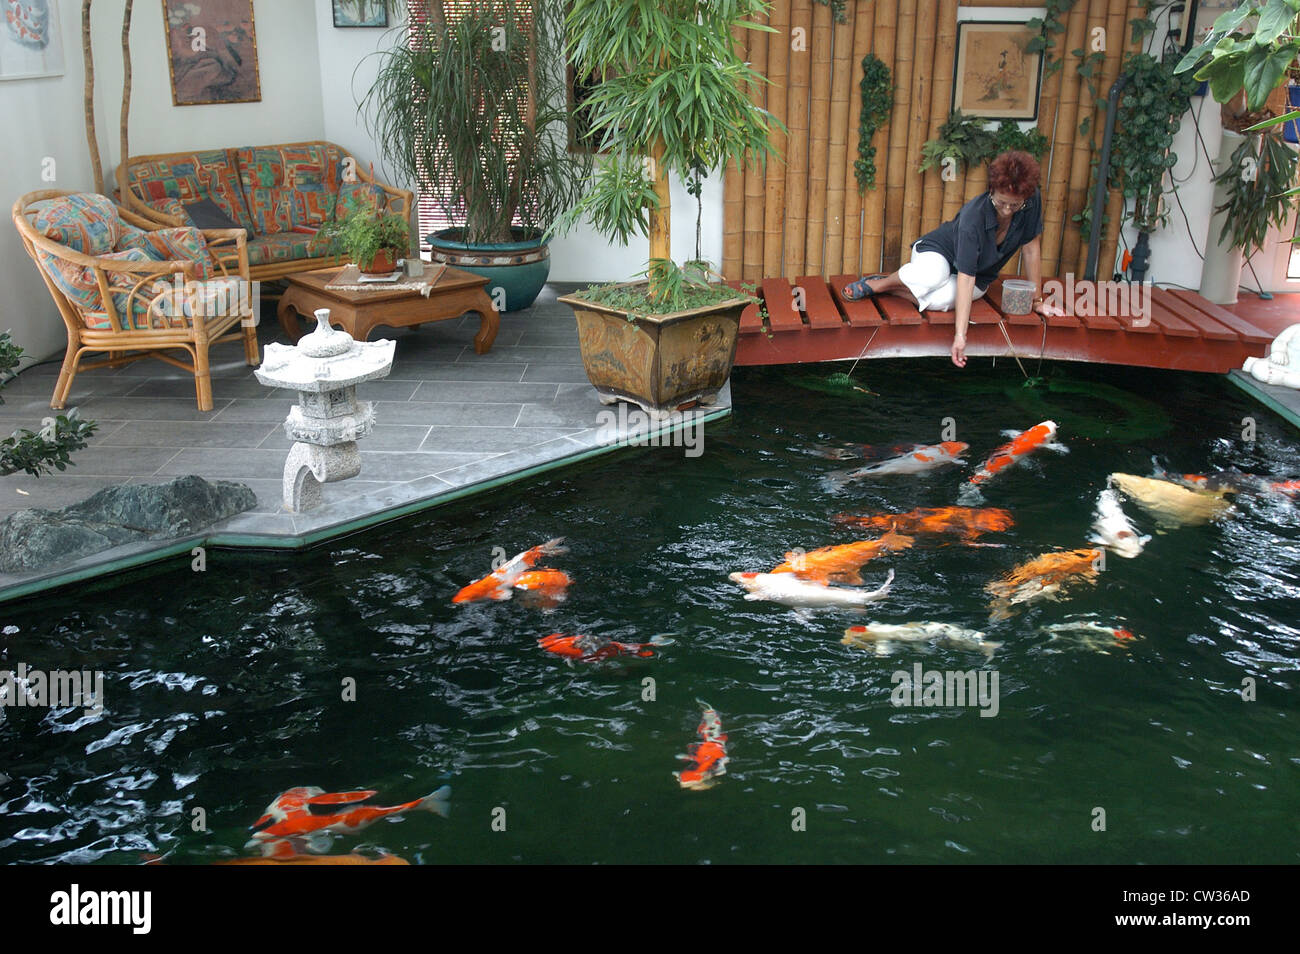 Indoor koi pond in reigoldswil switzerland stock photo for Koi fish pond design in malaysia